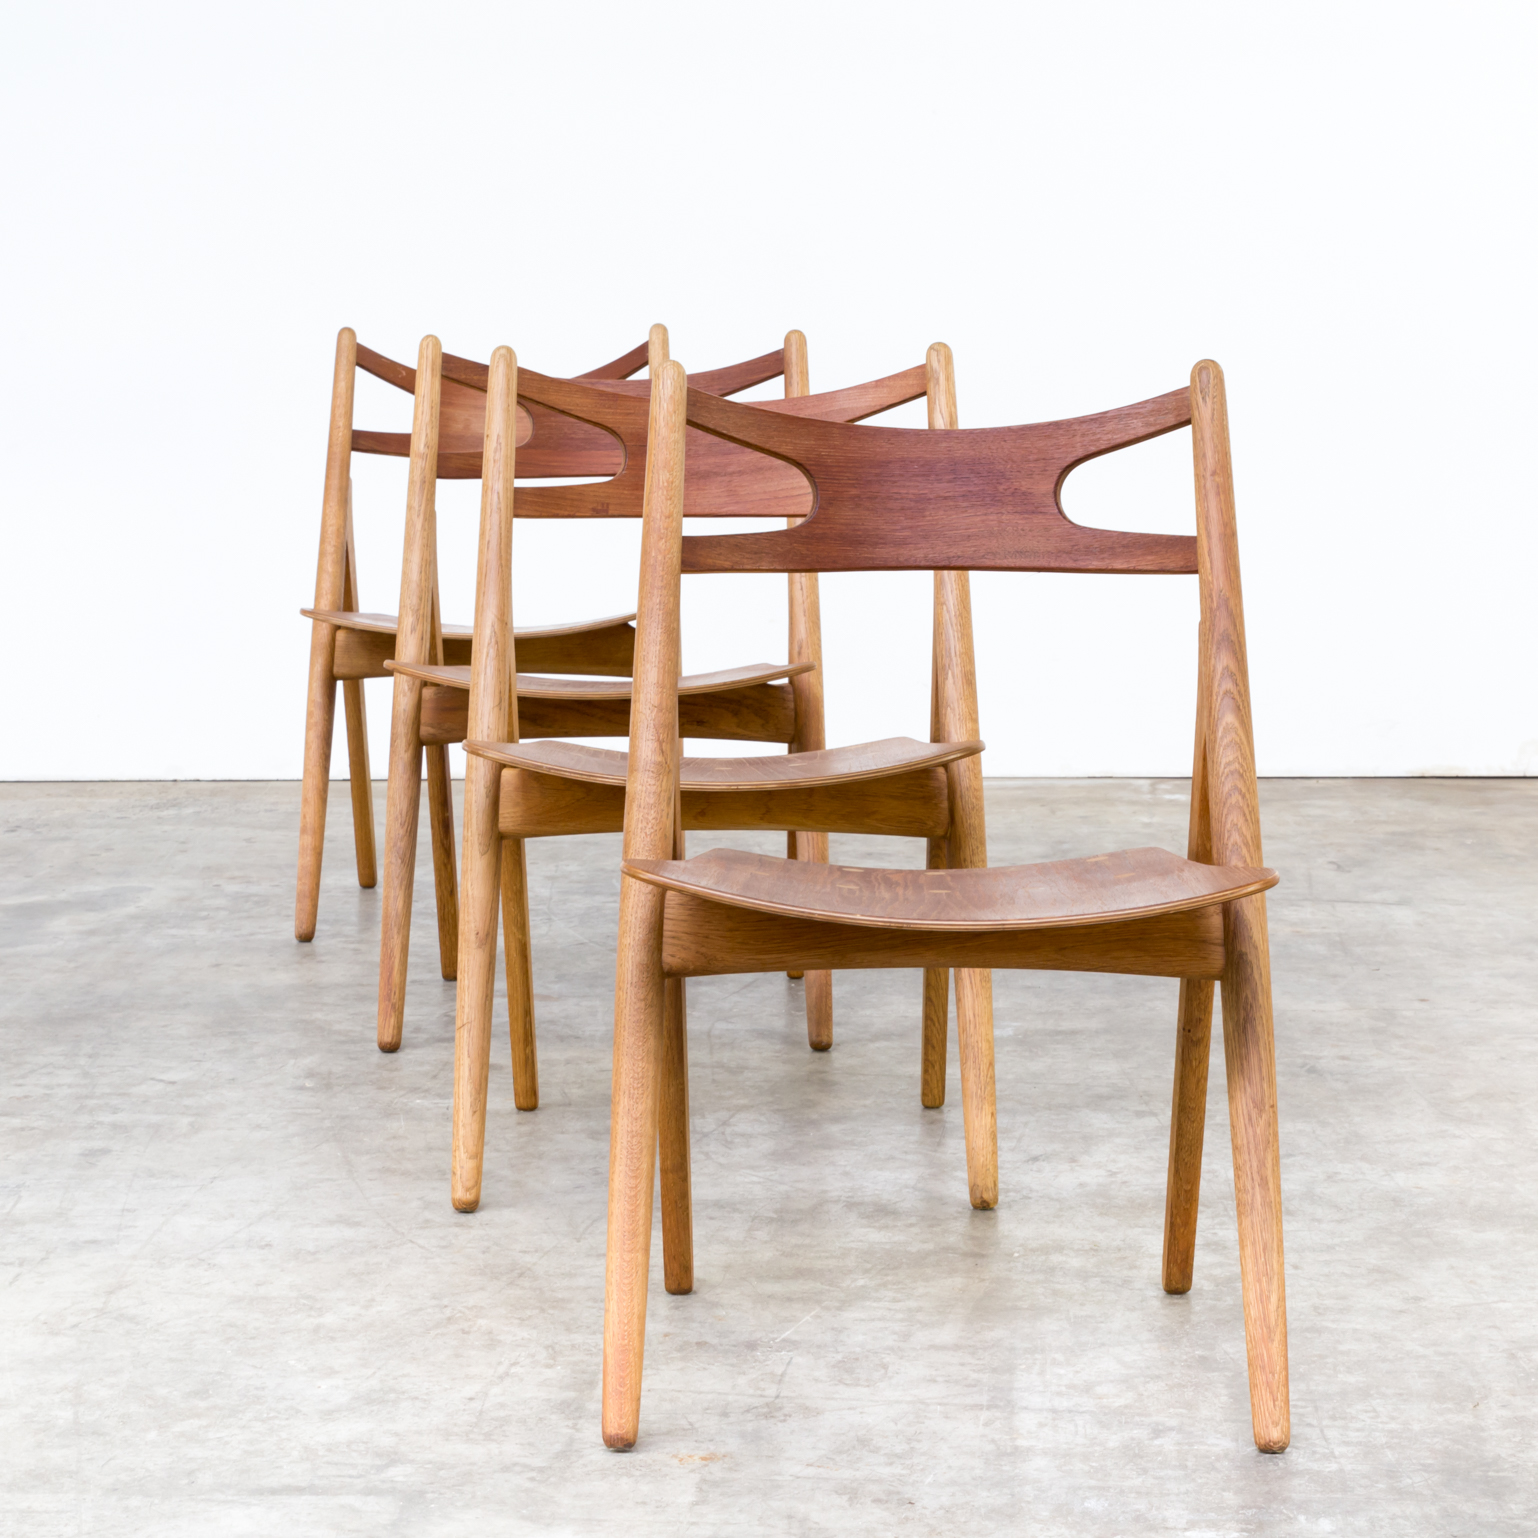 60s Hans Wegner CH29 Sawback dining chair for Carl Hansen & Son